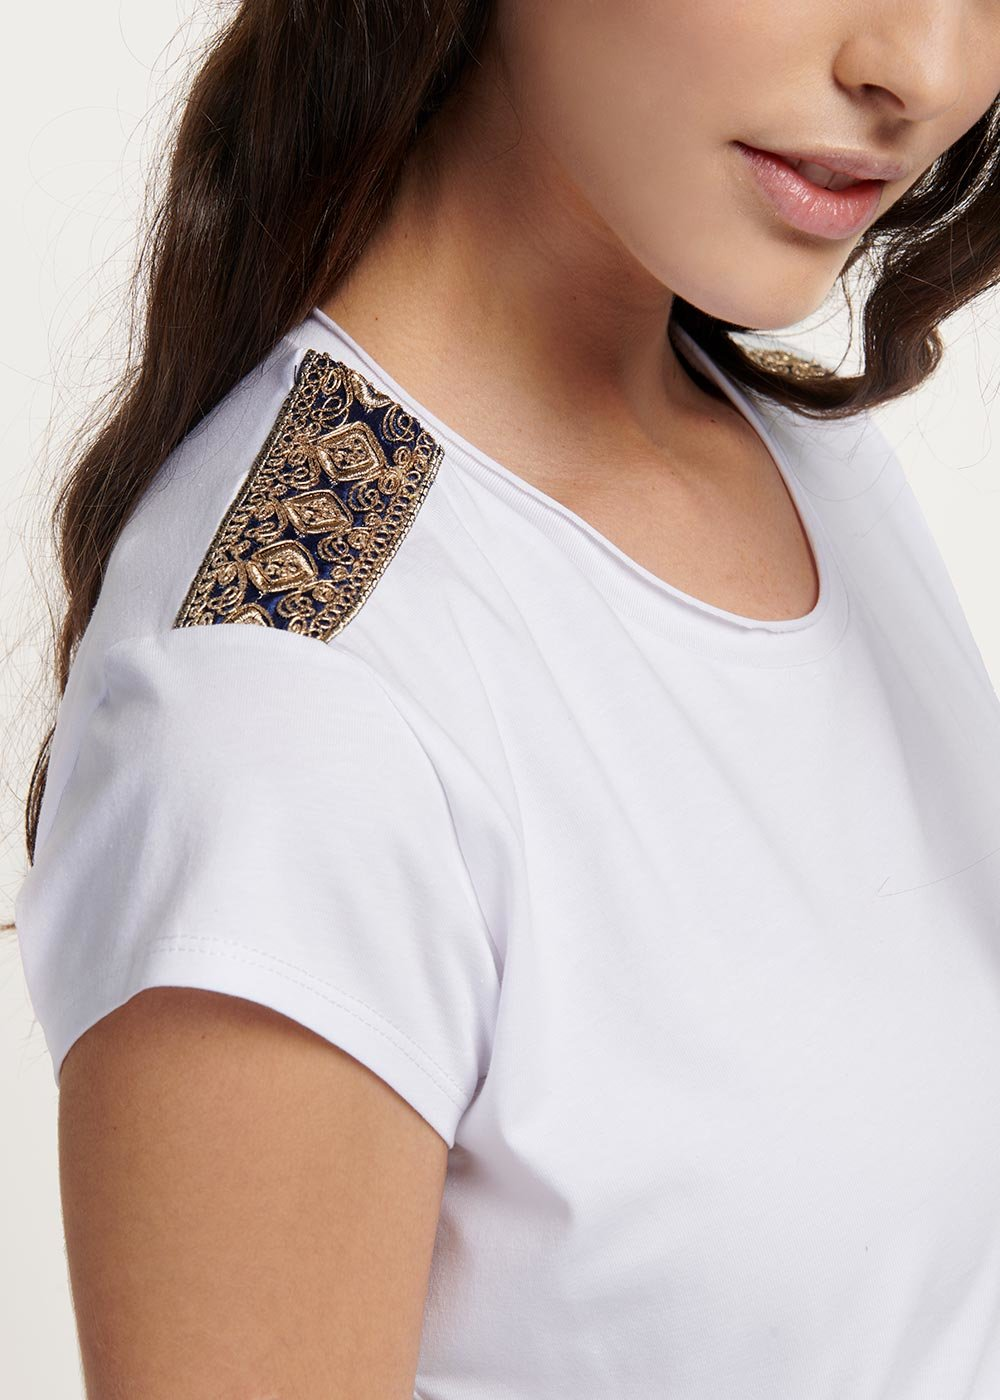 Suzanne viscose T-shirt with appliques - White - Woman